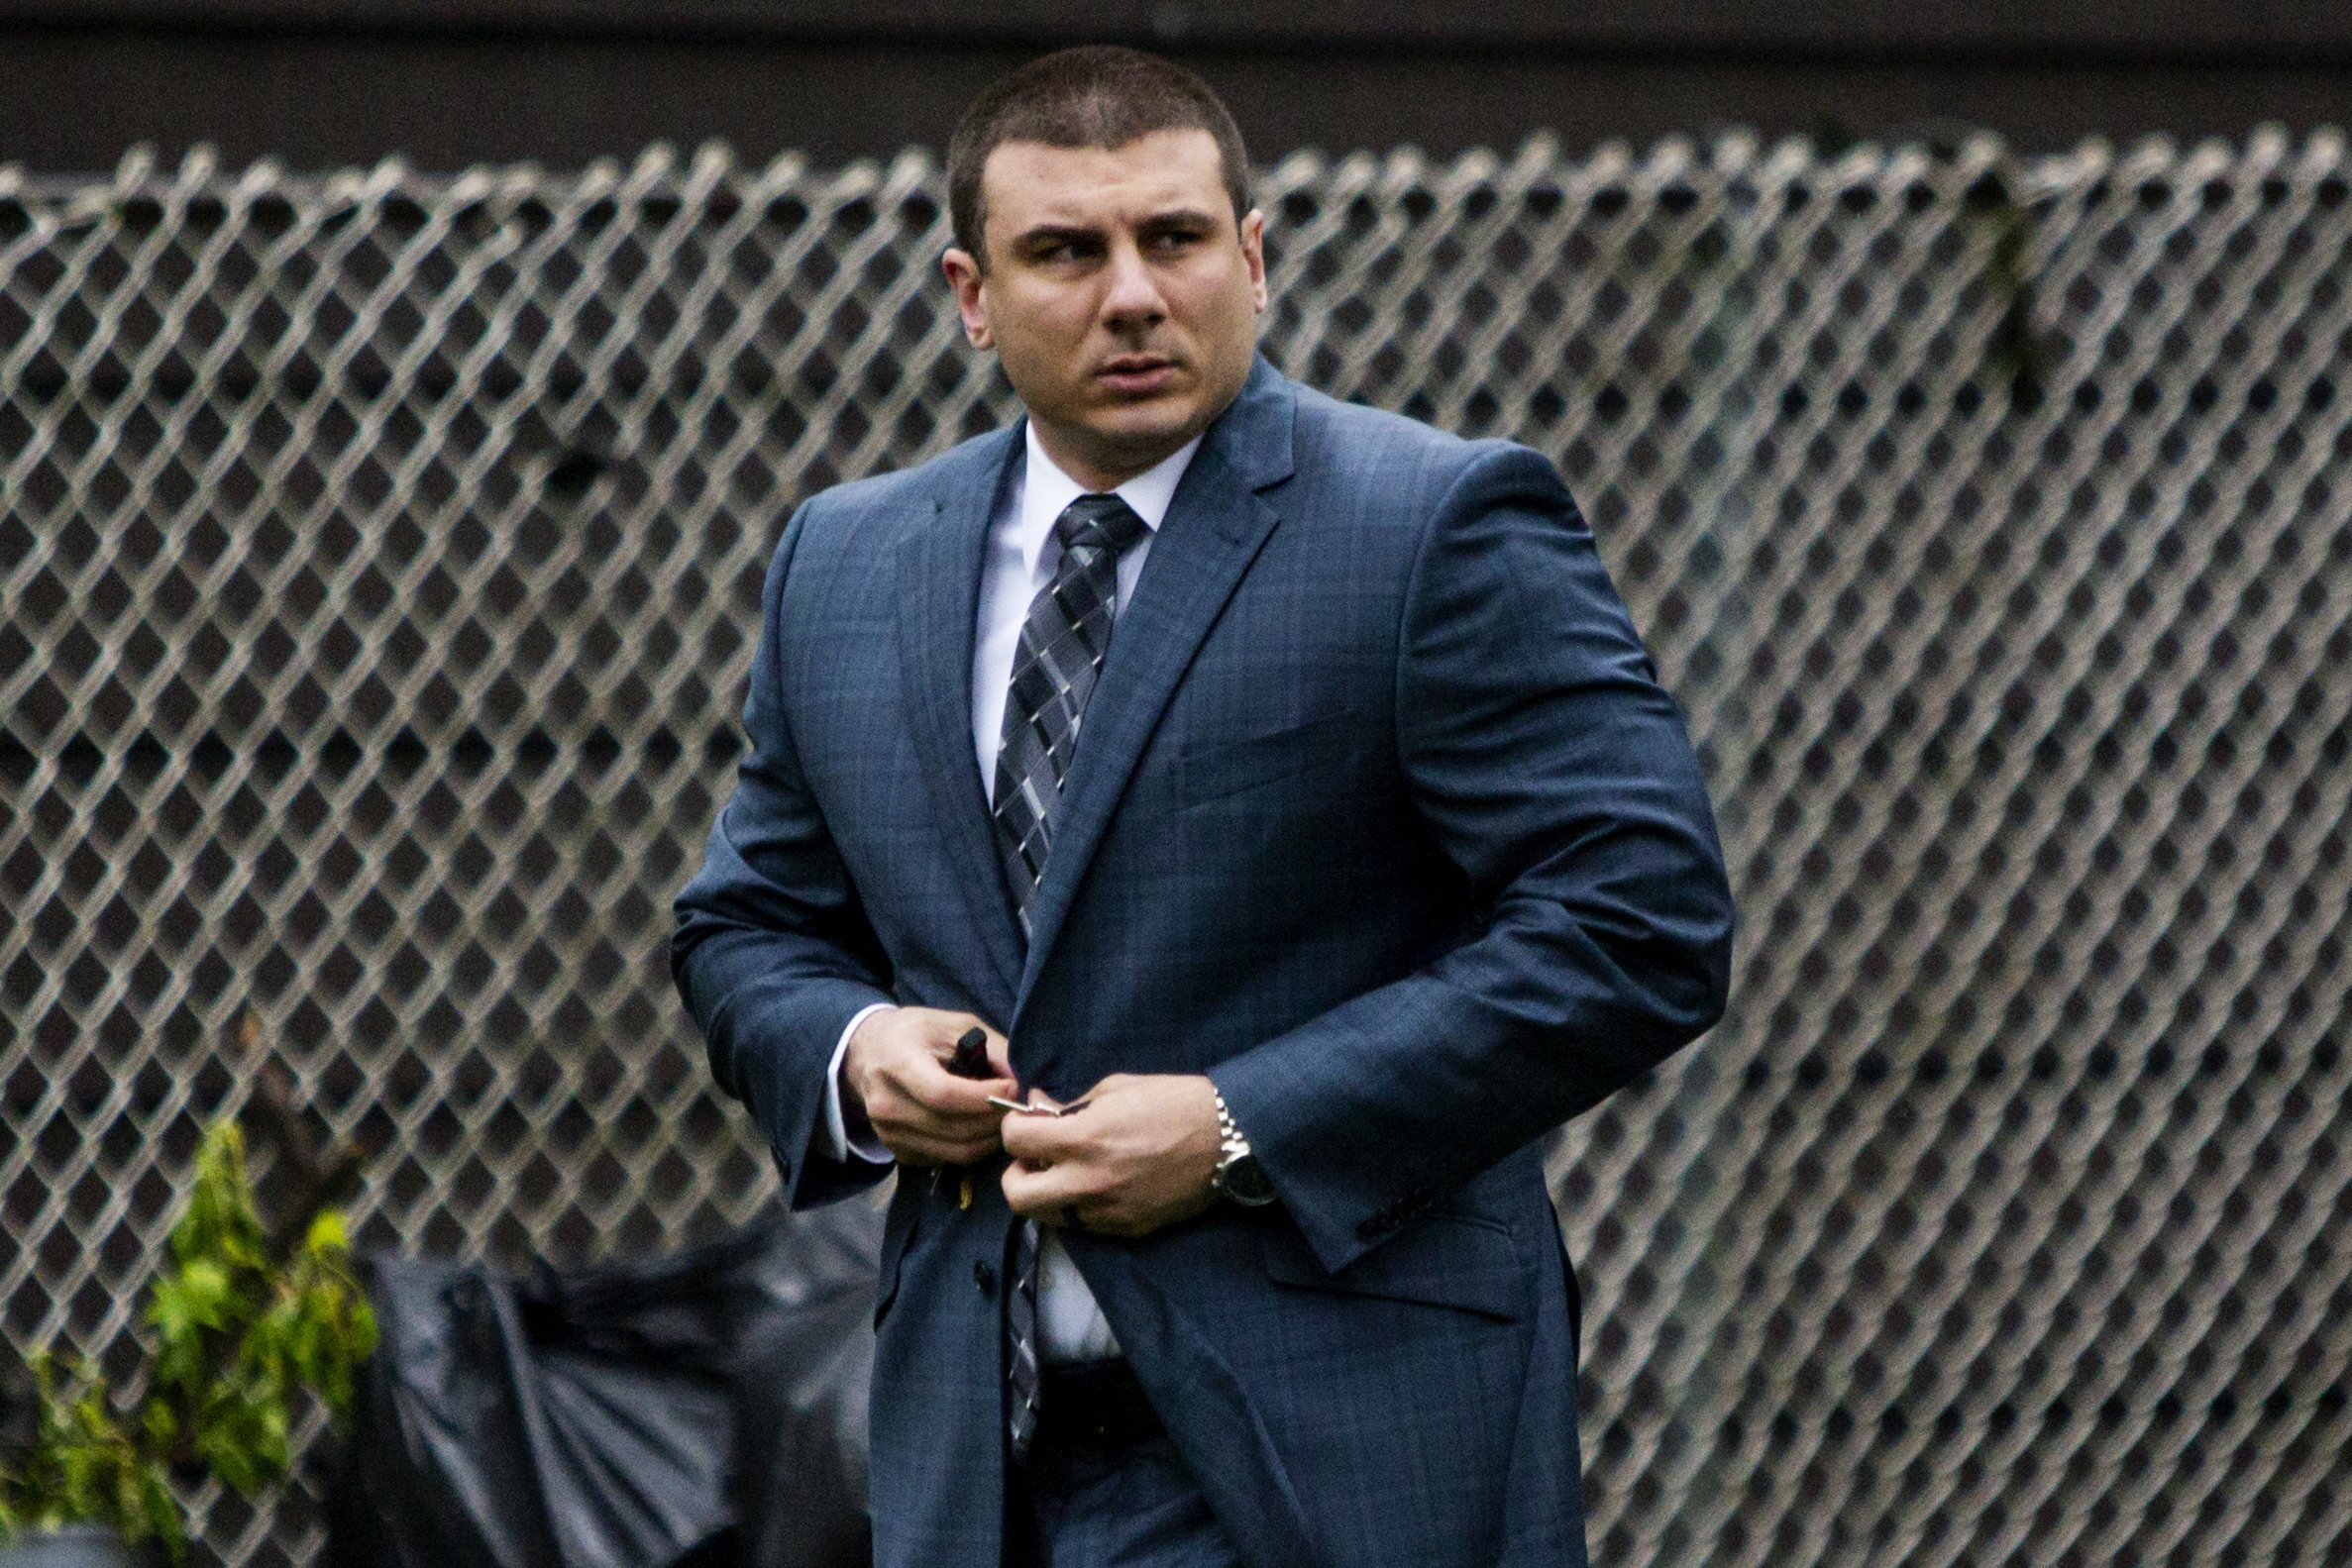 NYPD officer accused of choking Eric Garner five years ago has been fired